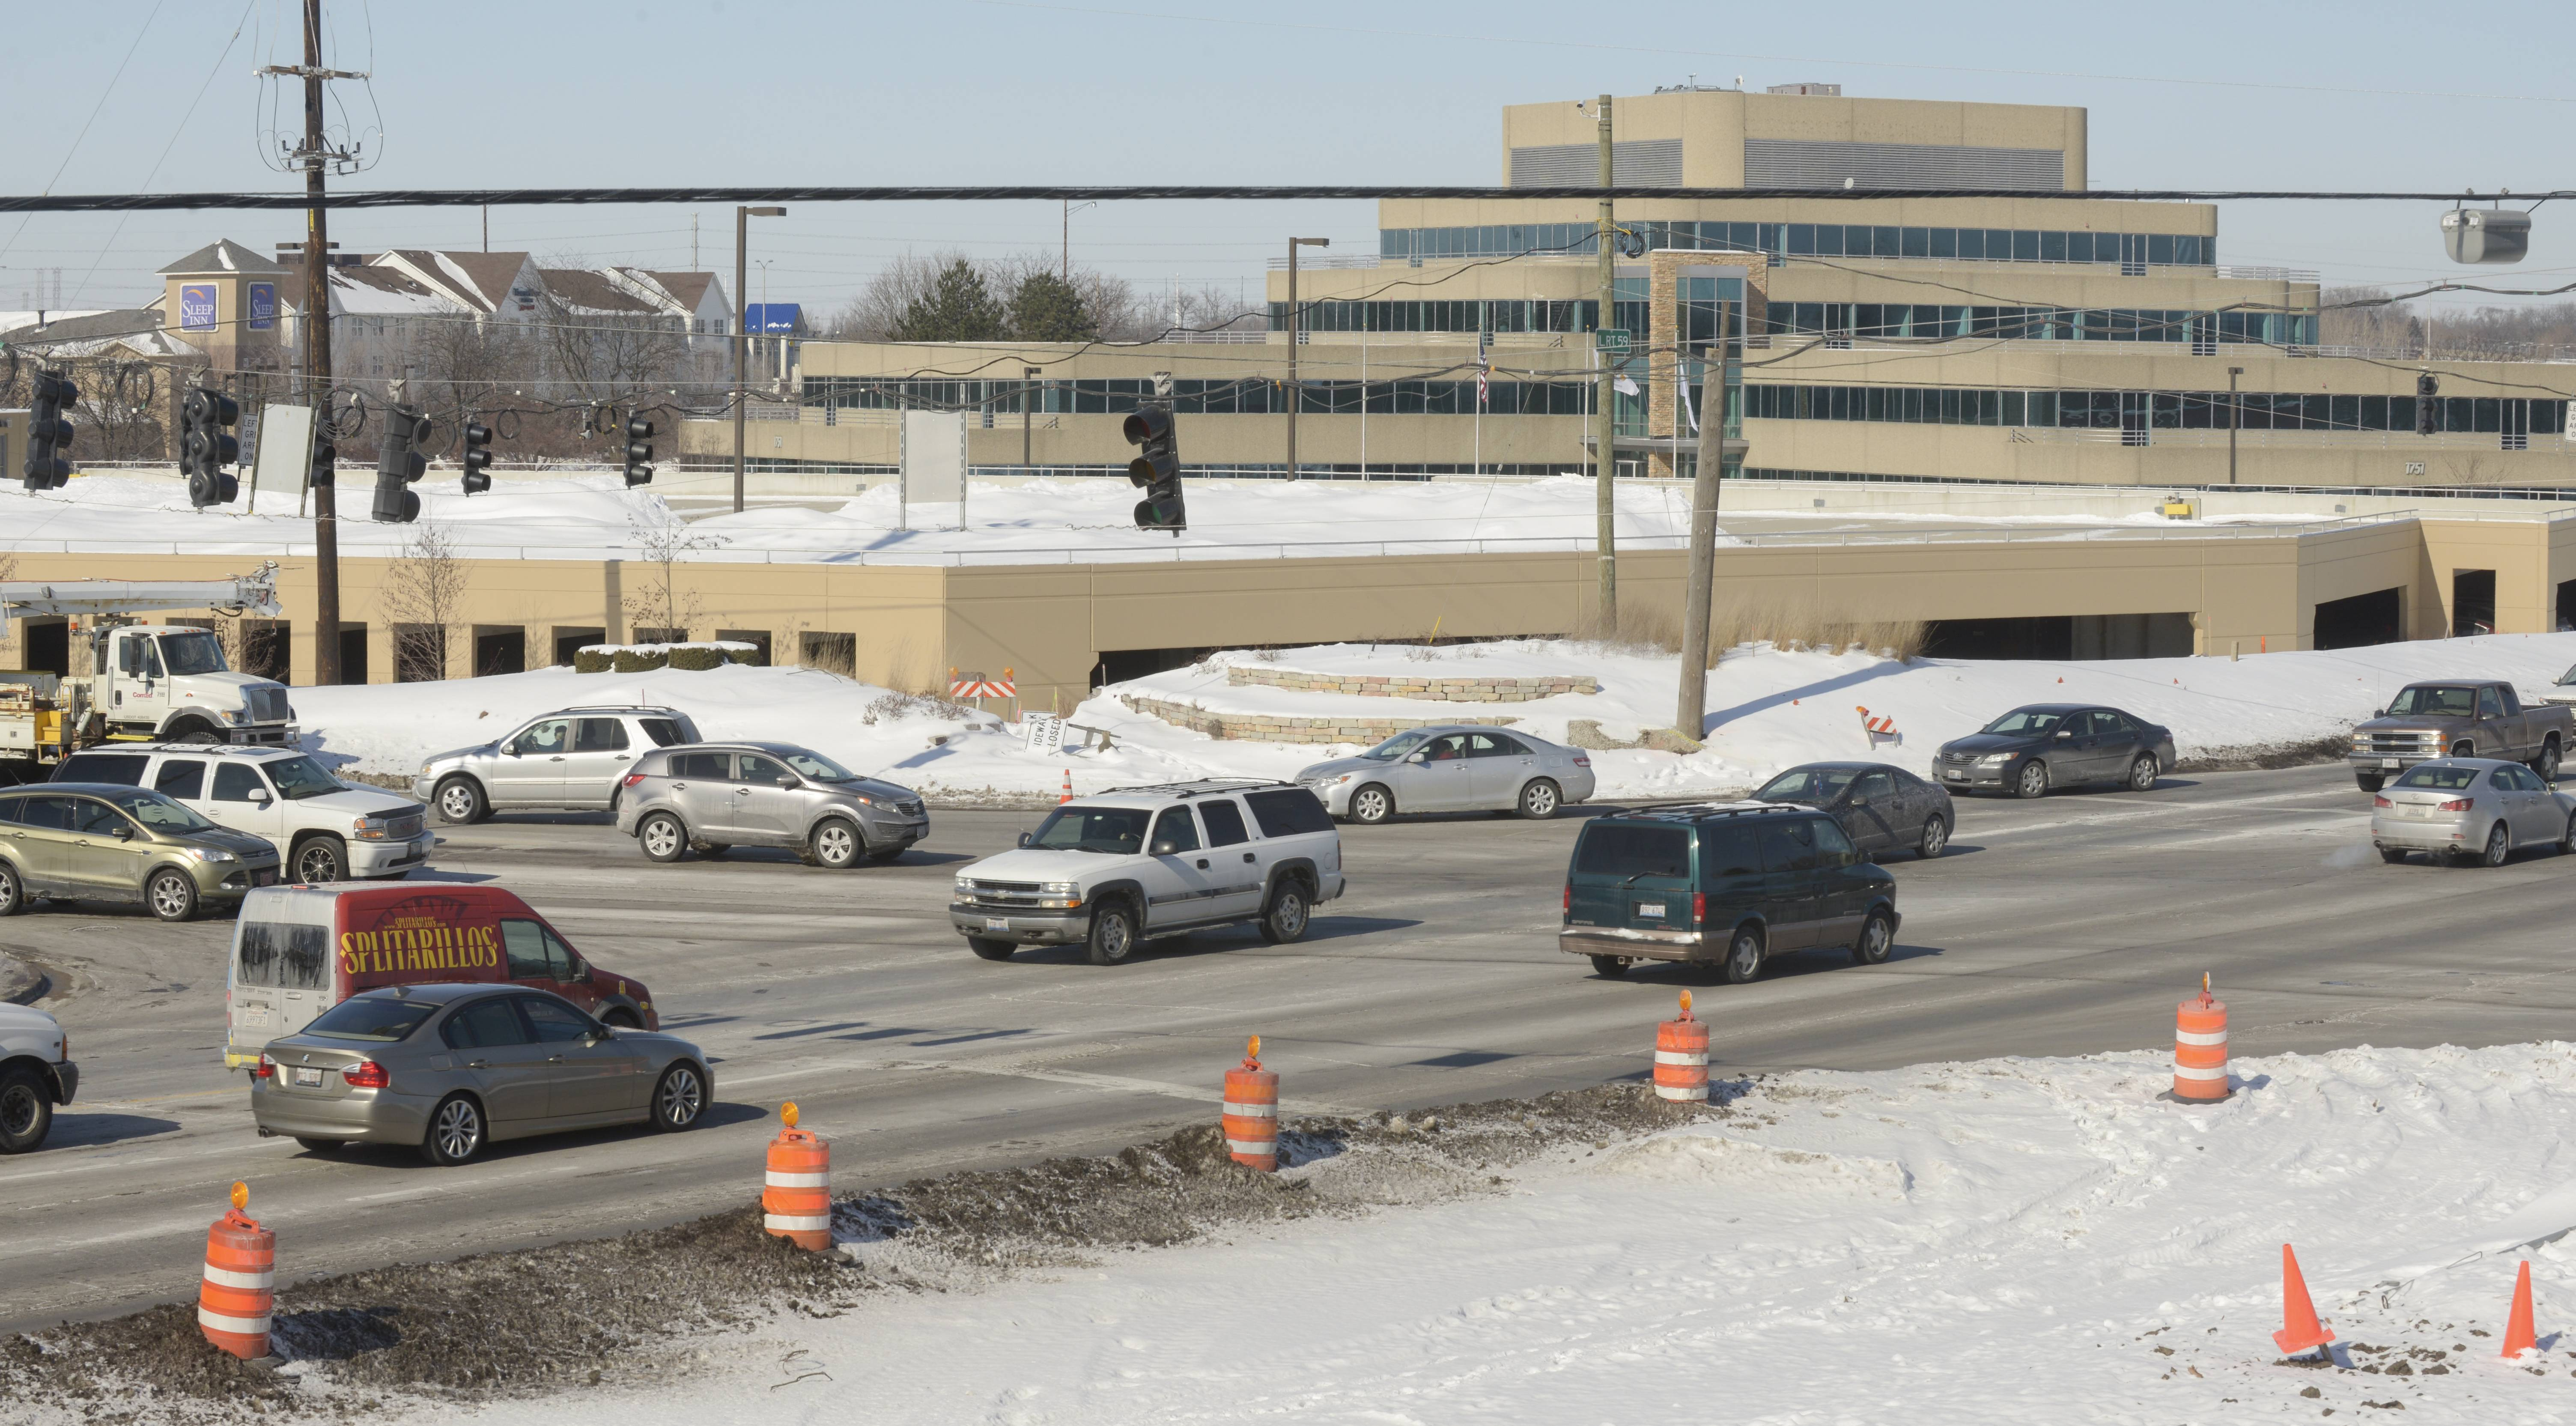 The Naperville intersection of Route 59 and Diehl Road was the site of 58 crashes in 2013 -- tied for highest citywide with another intersection on Route 59 at 95th Street. Police say work to widen the road and state laws to prevent distracted driving could help reduce the number of crashes.